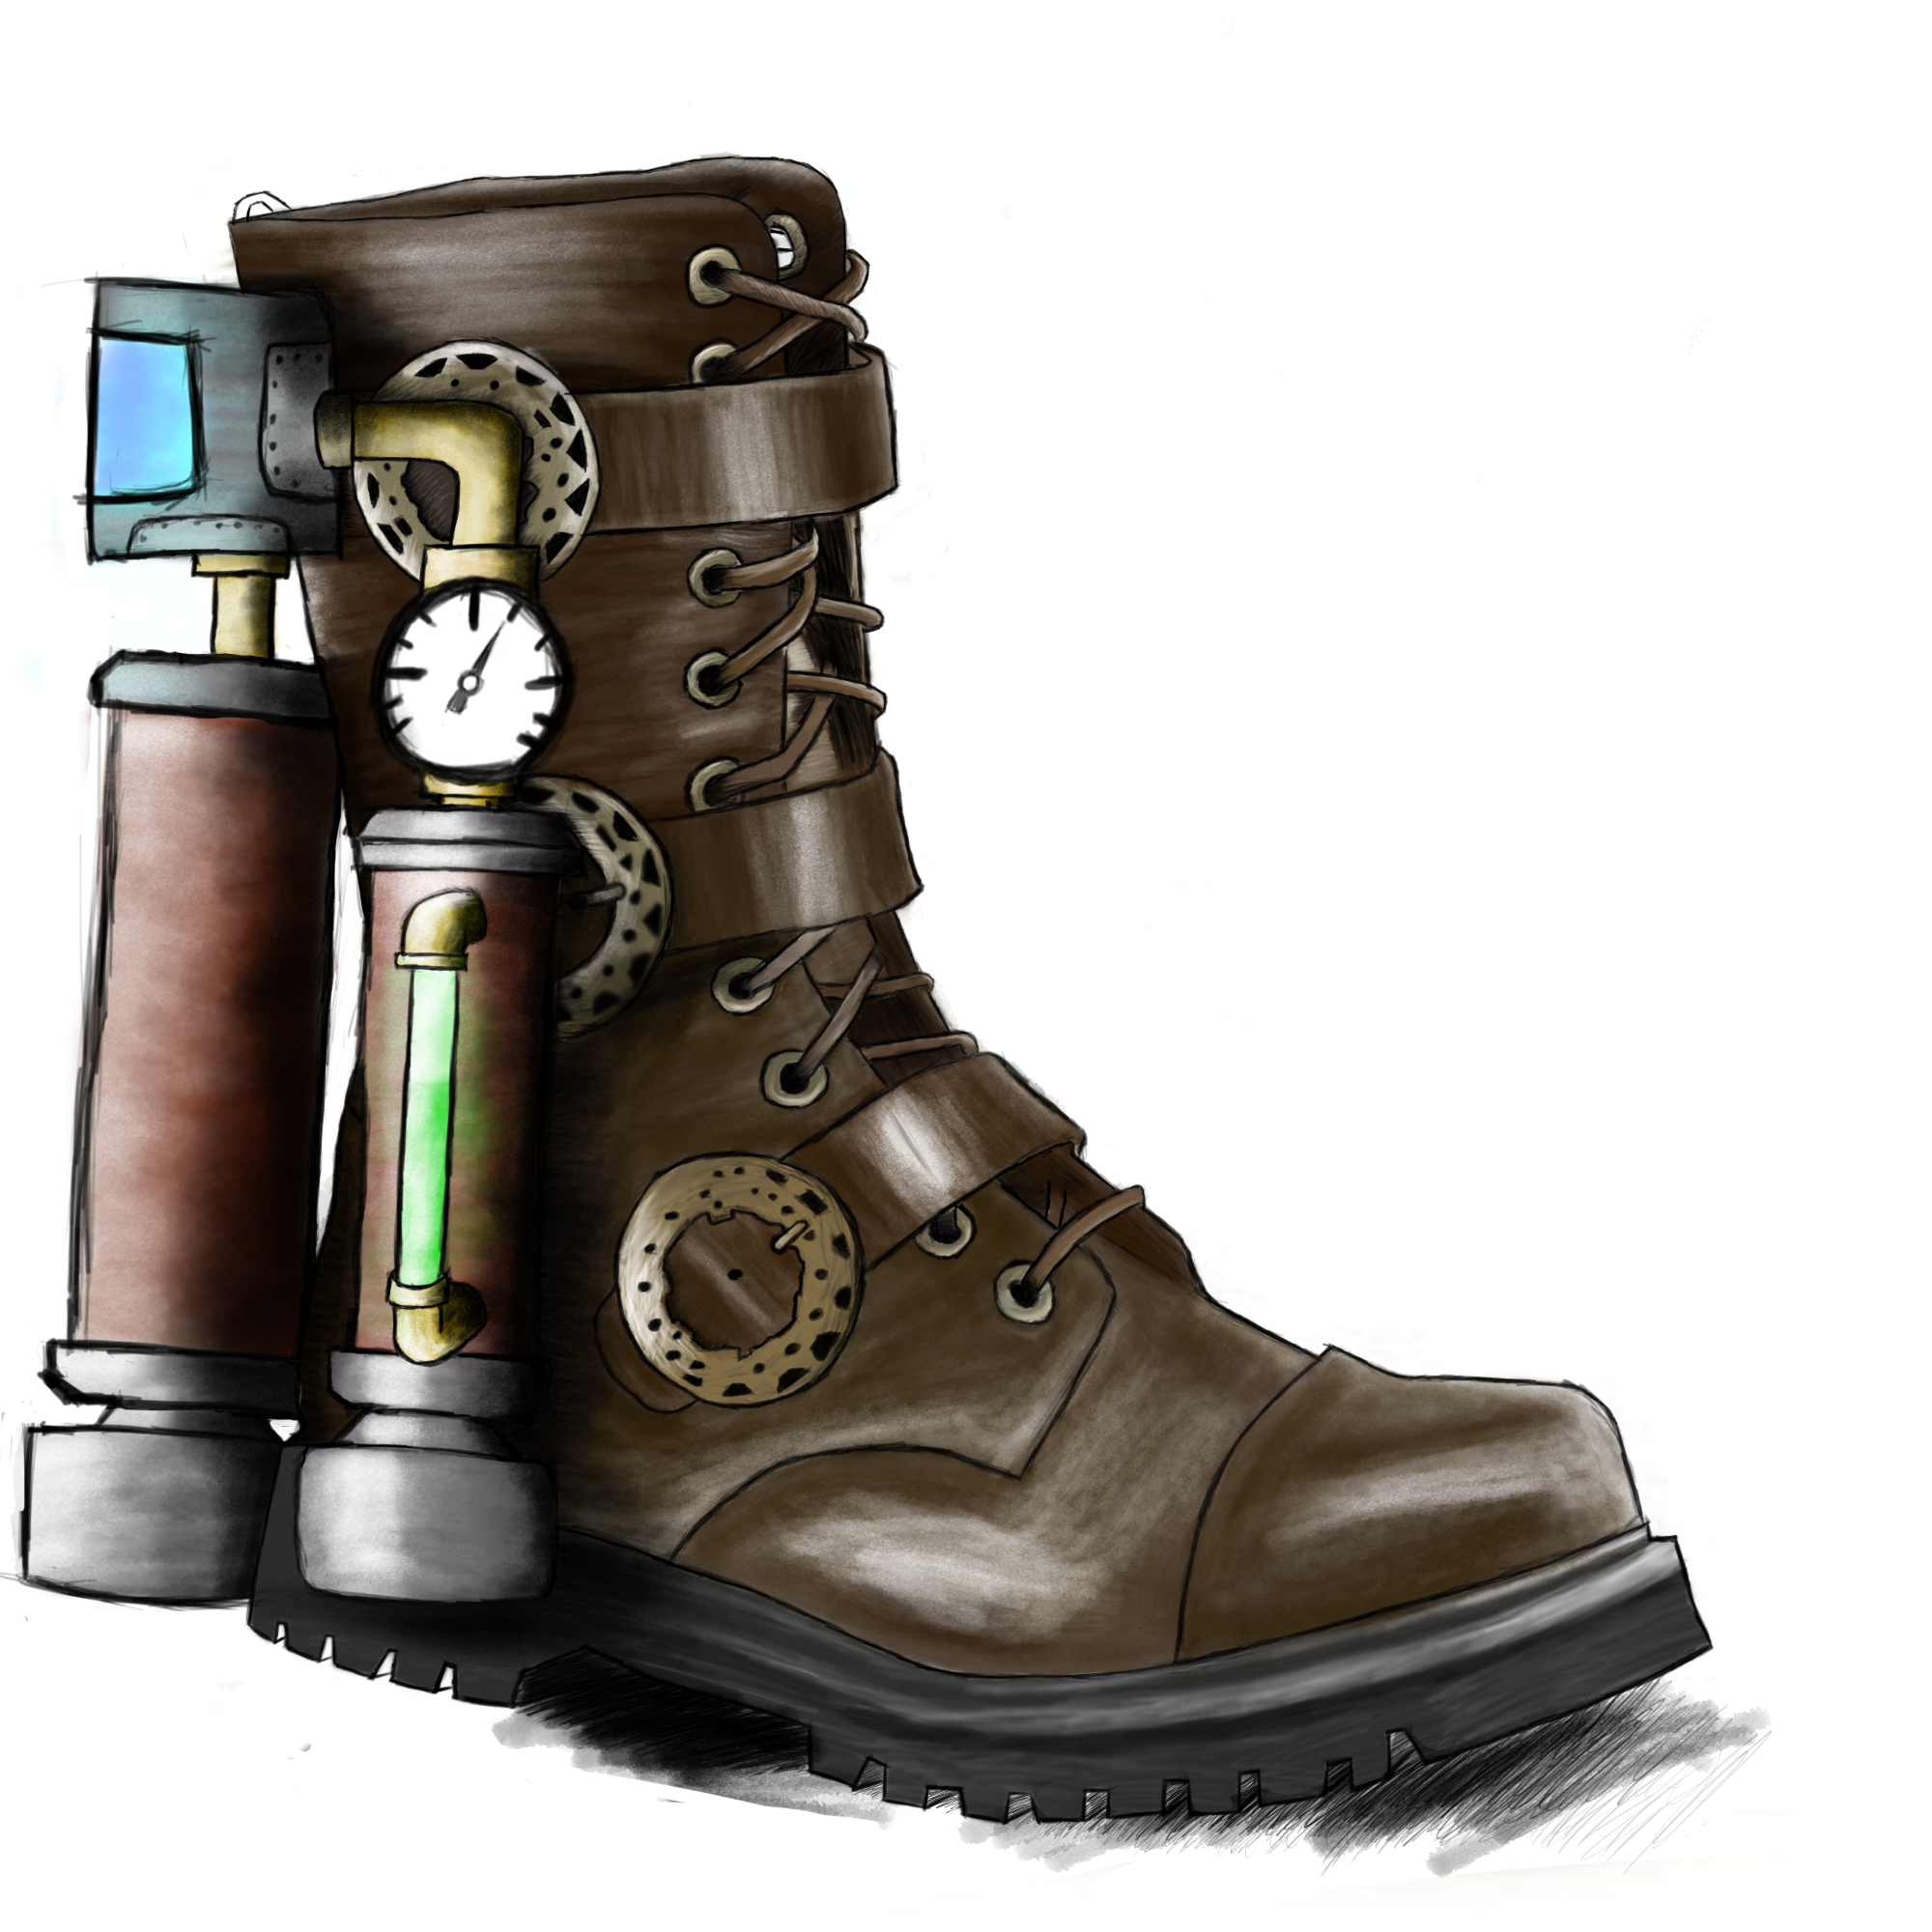 Rocket Boot Finished by SxNolan - 2544.2KB